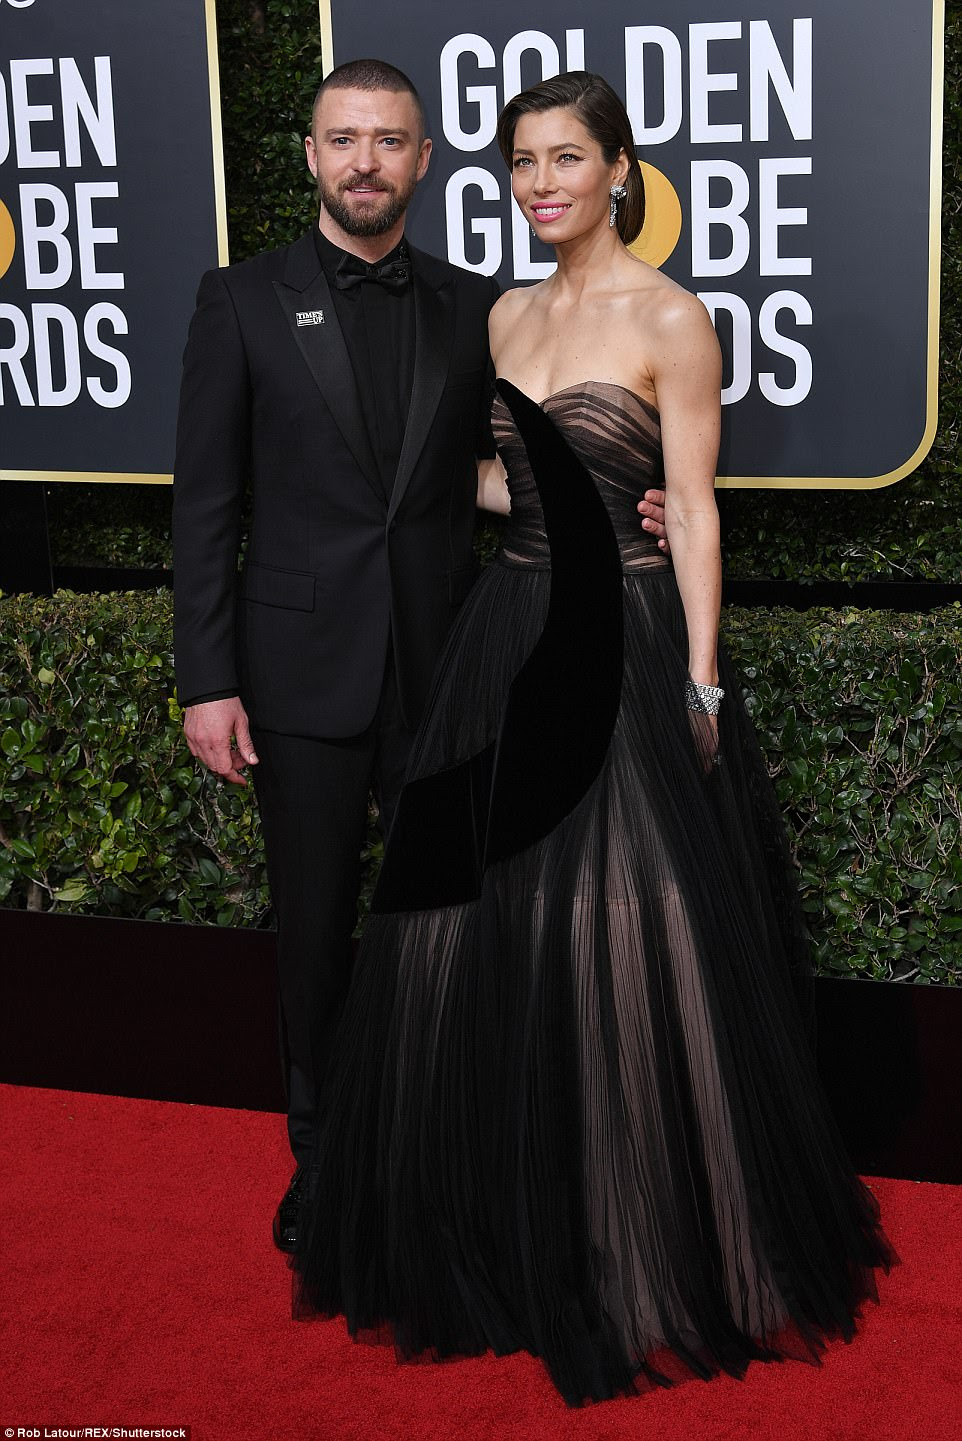 Flawless couple: Justin Timberlake and wife Jessica Biel looked incredible upon arrival on the red carpet; both wore Dior